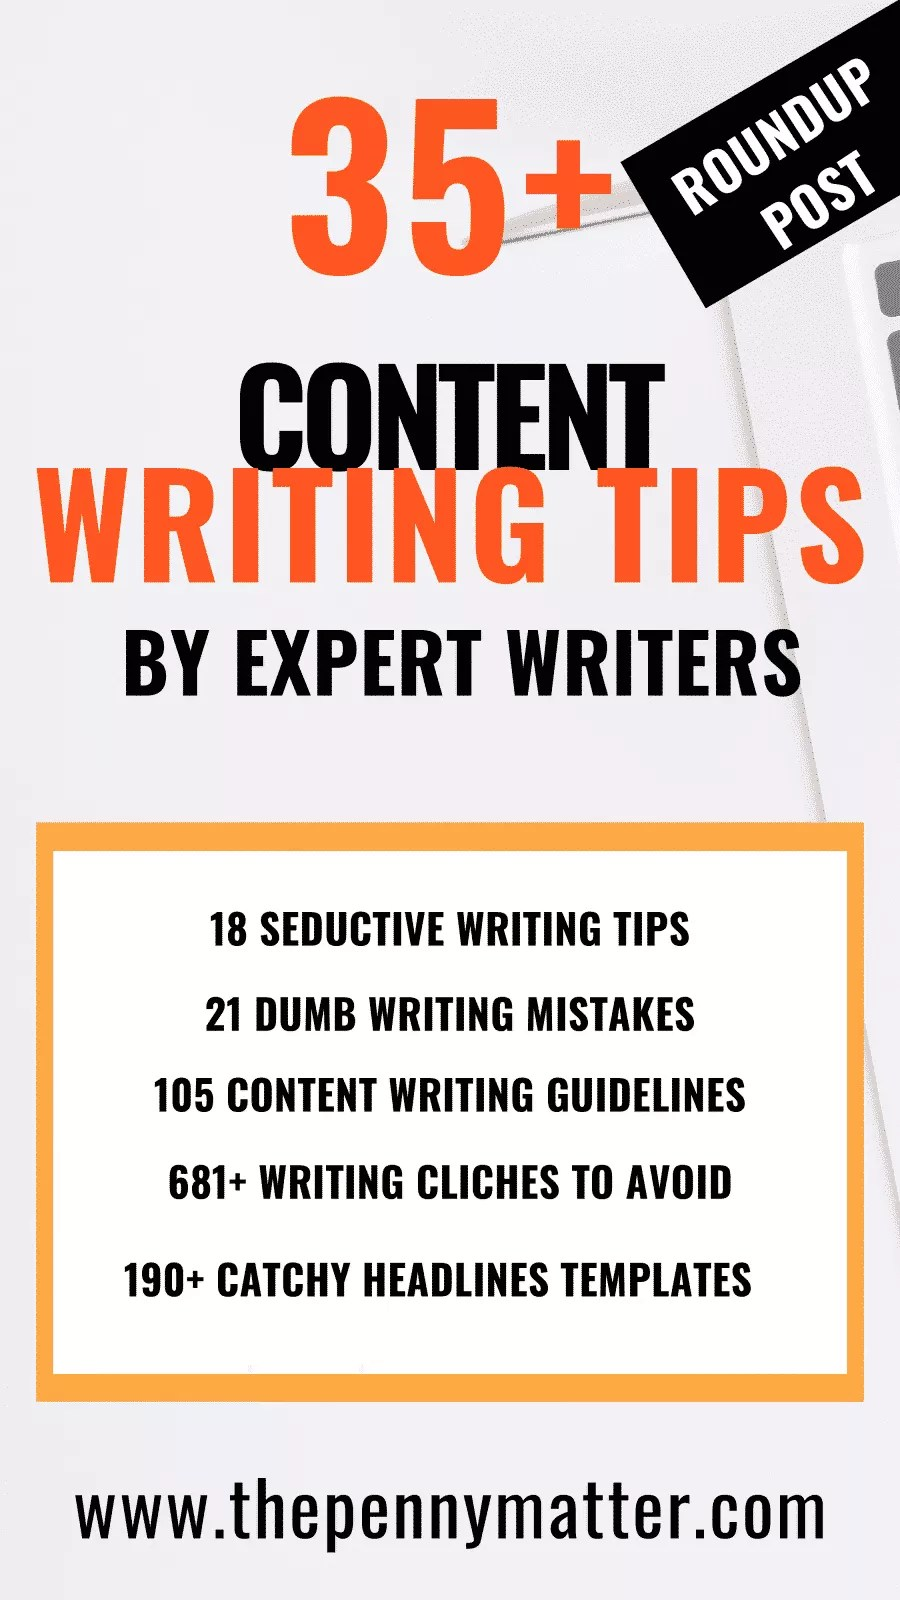 35+ content writing tips by expert writers